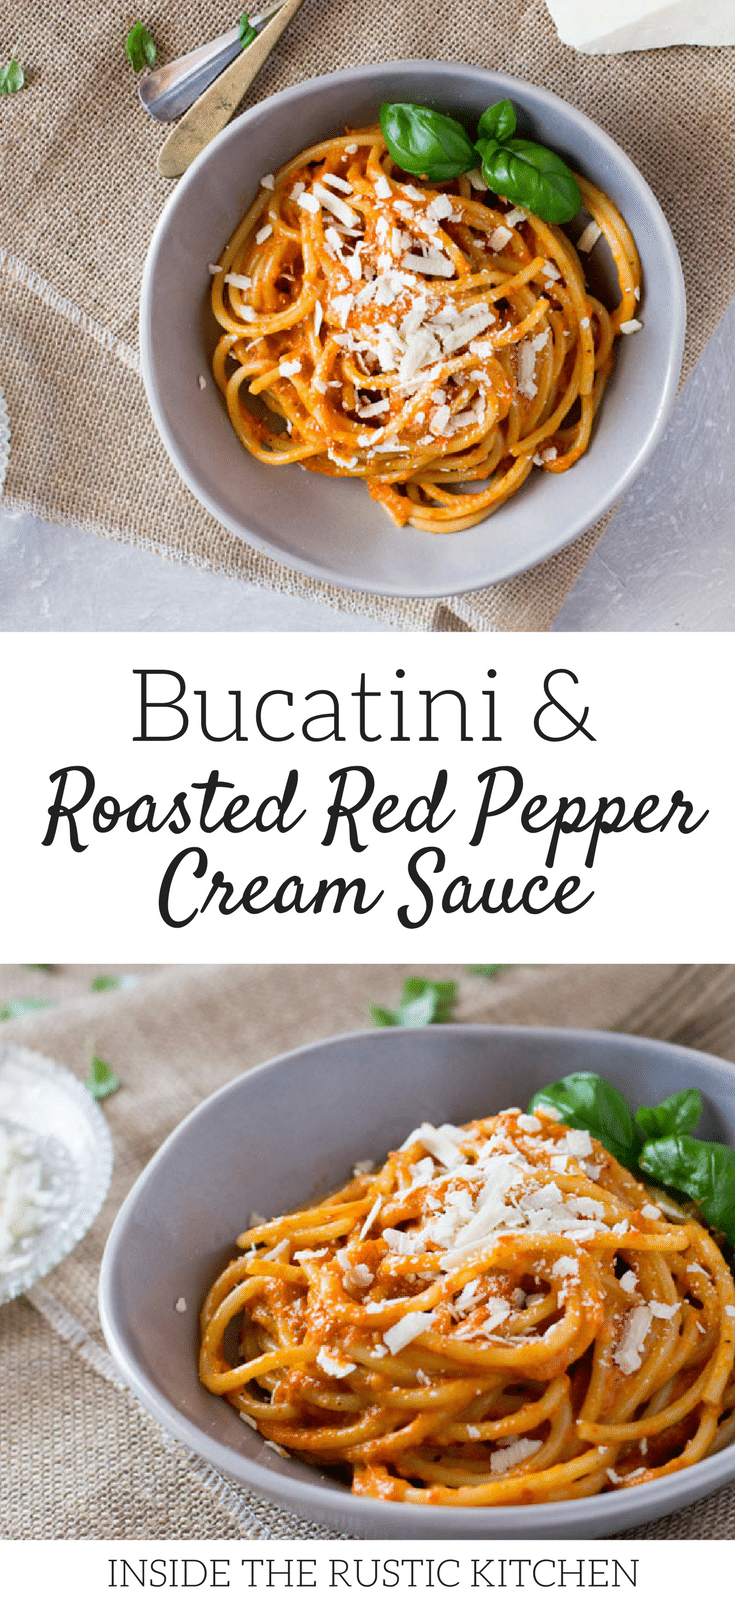 Bucatini pasta with a roasted red pepper cream sauce recipe topped with shavings of ricotta salata. A super easy pasta recipe for weeknights. inside the rustic kitchen